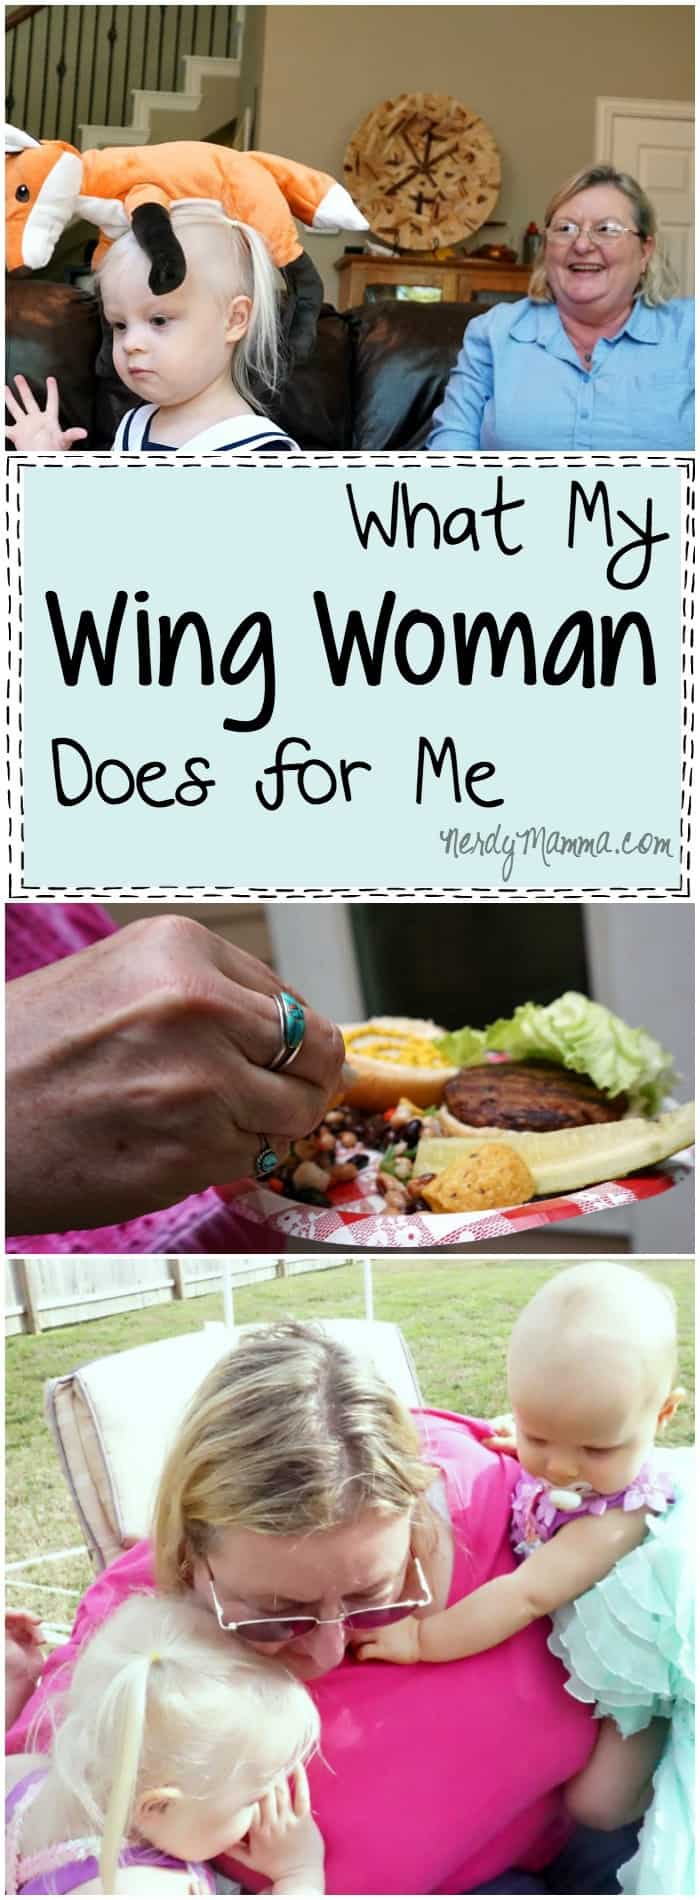 This woman's discussion on her wing woman Awesome.